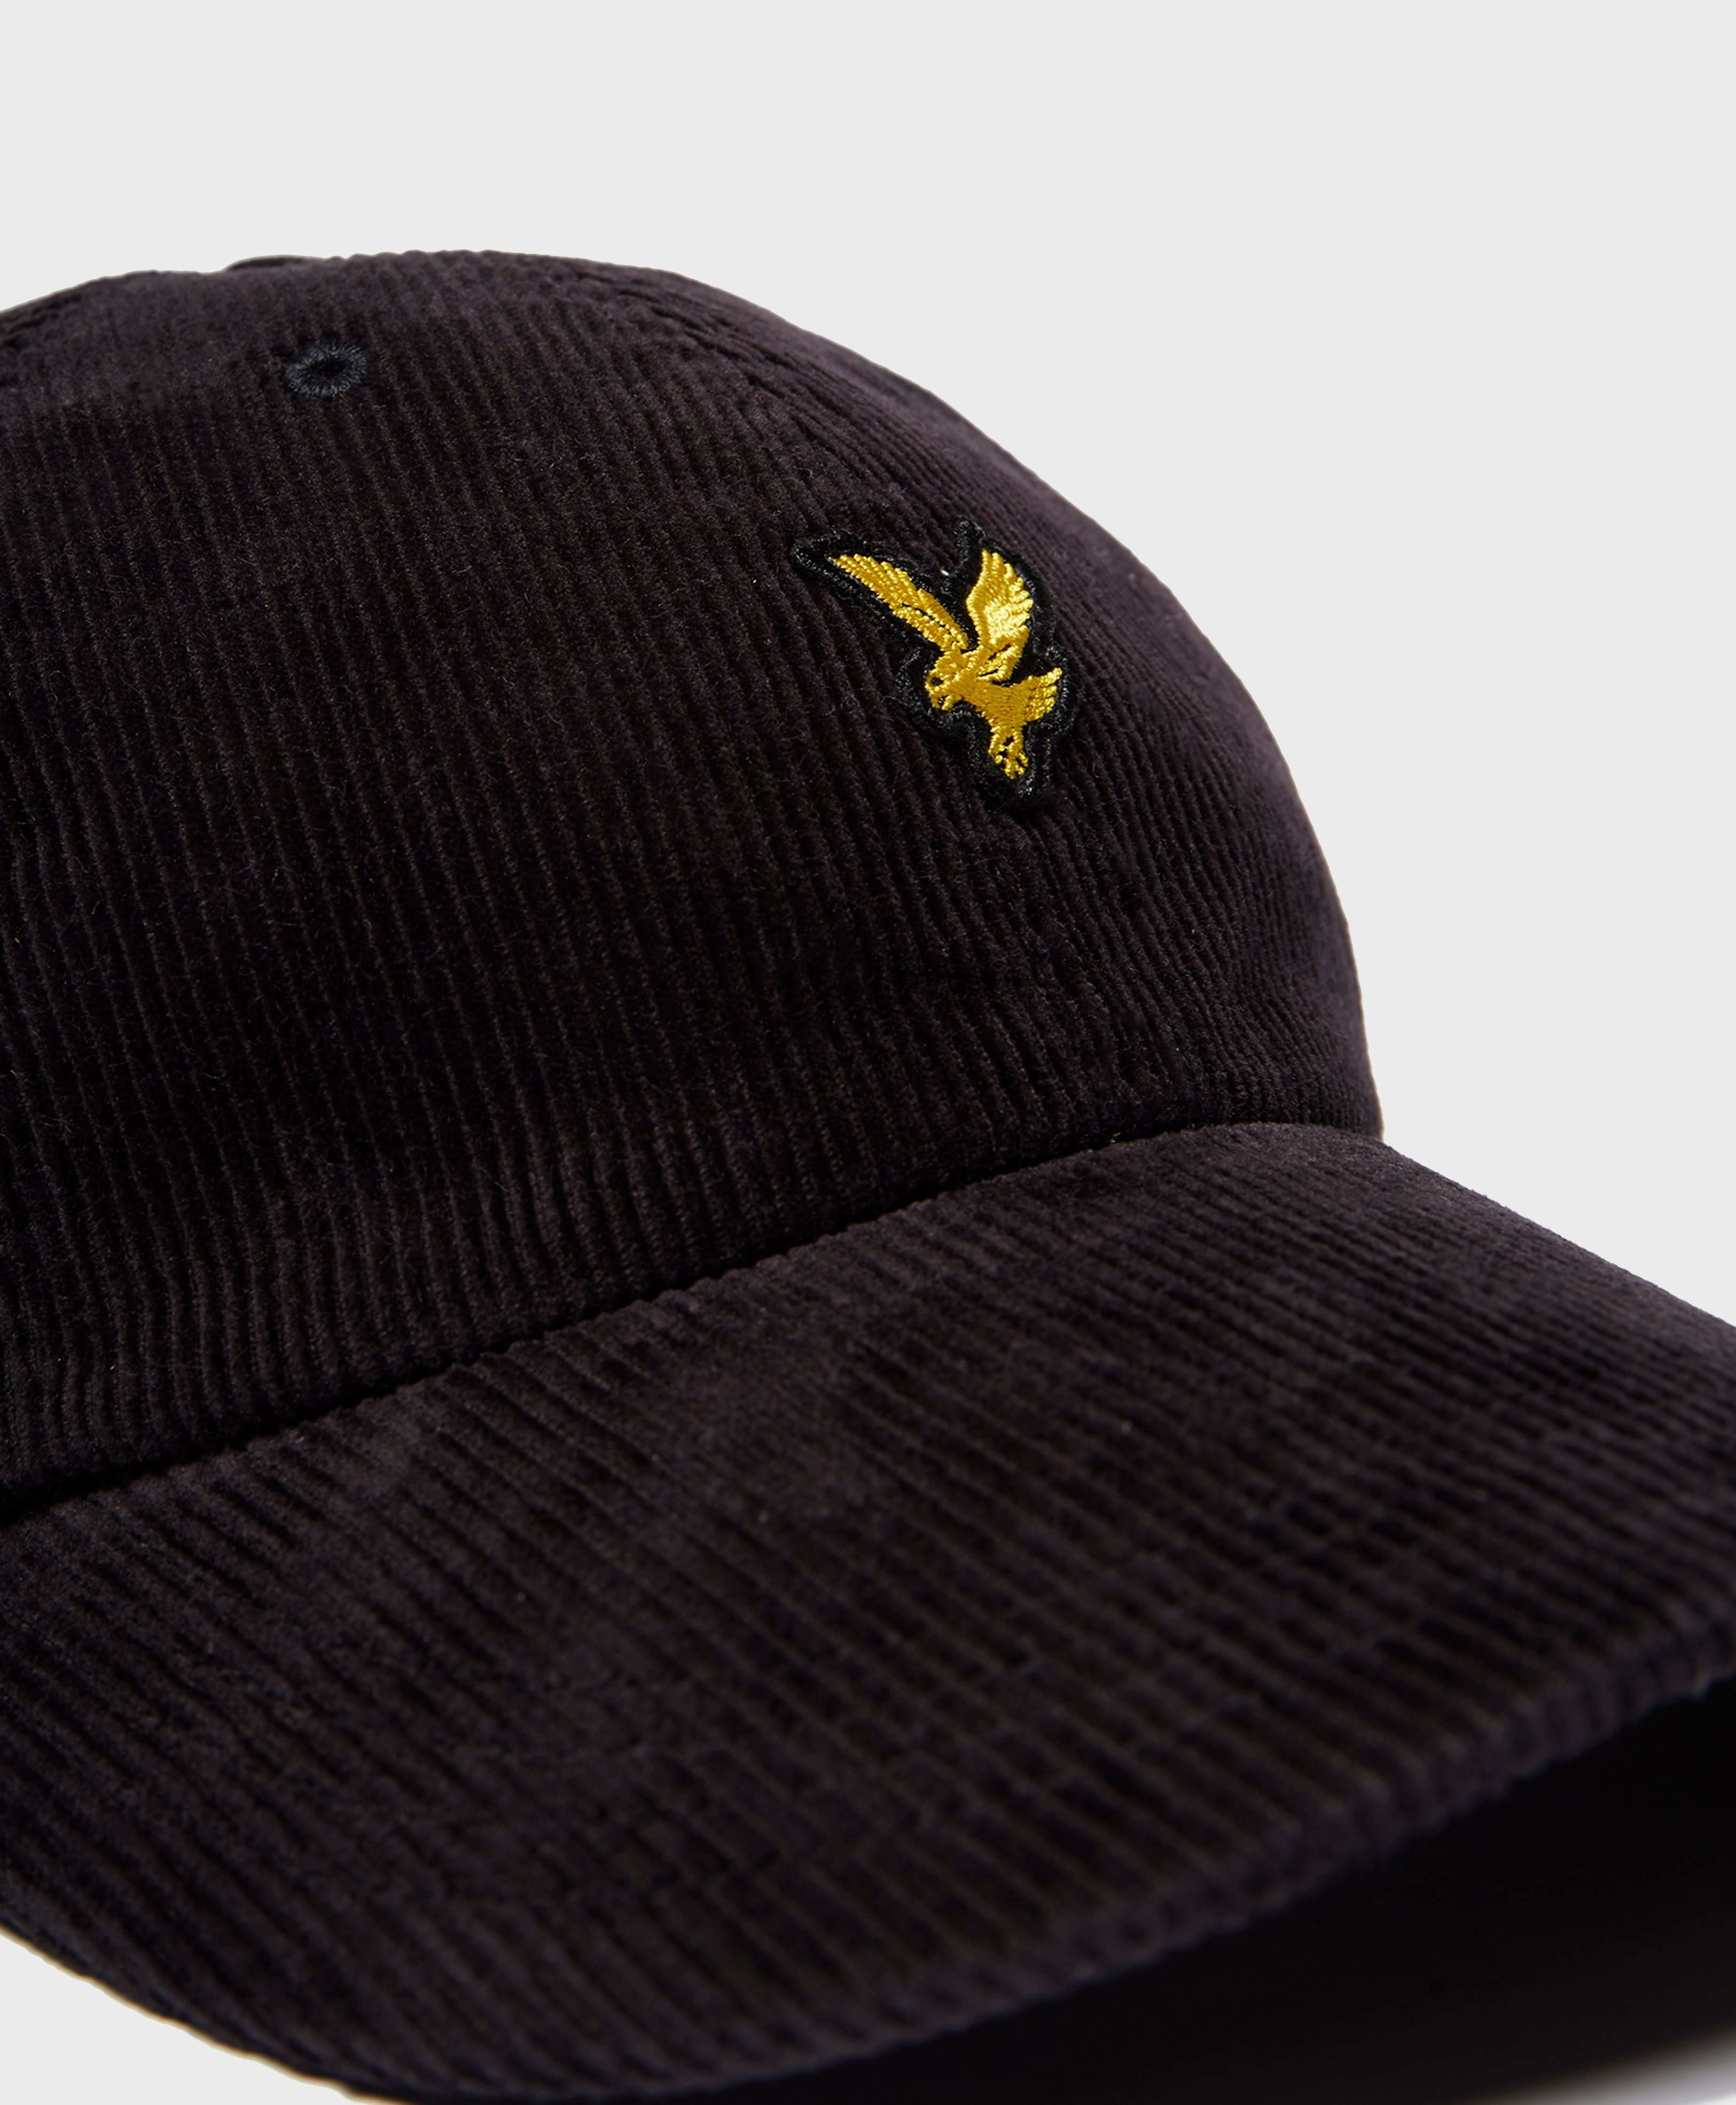 Lyle & Scott Eagle Corduroy Cap